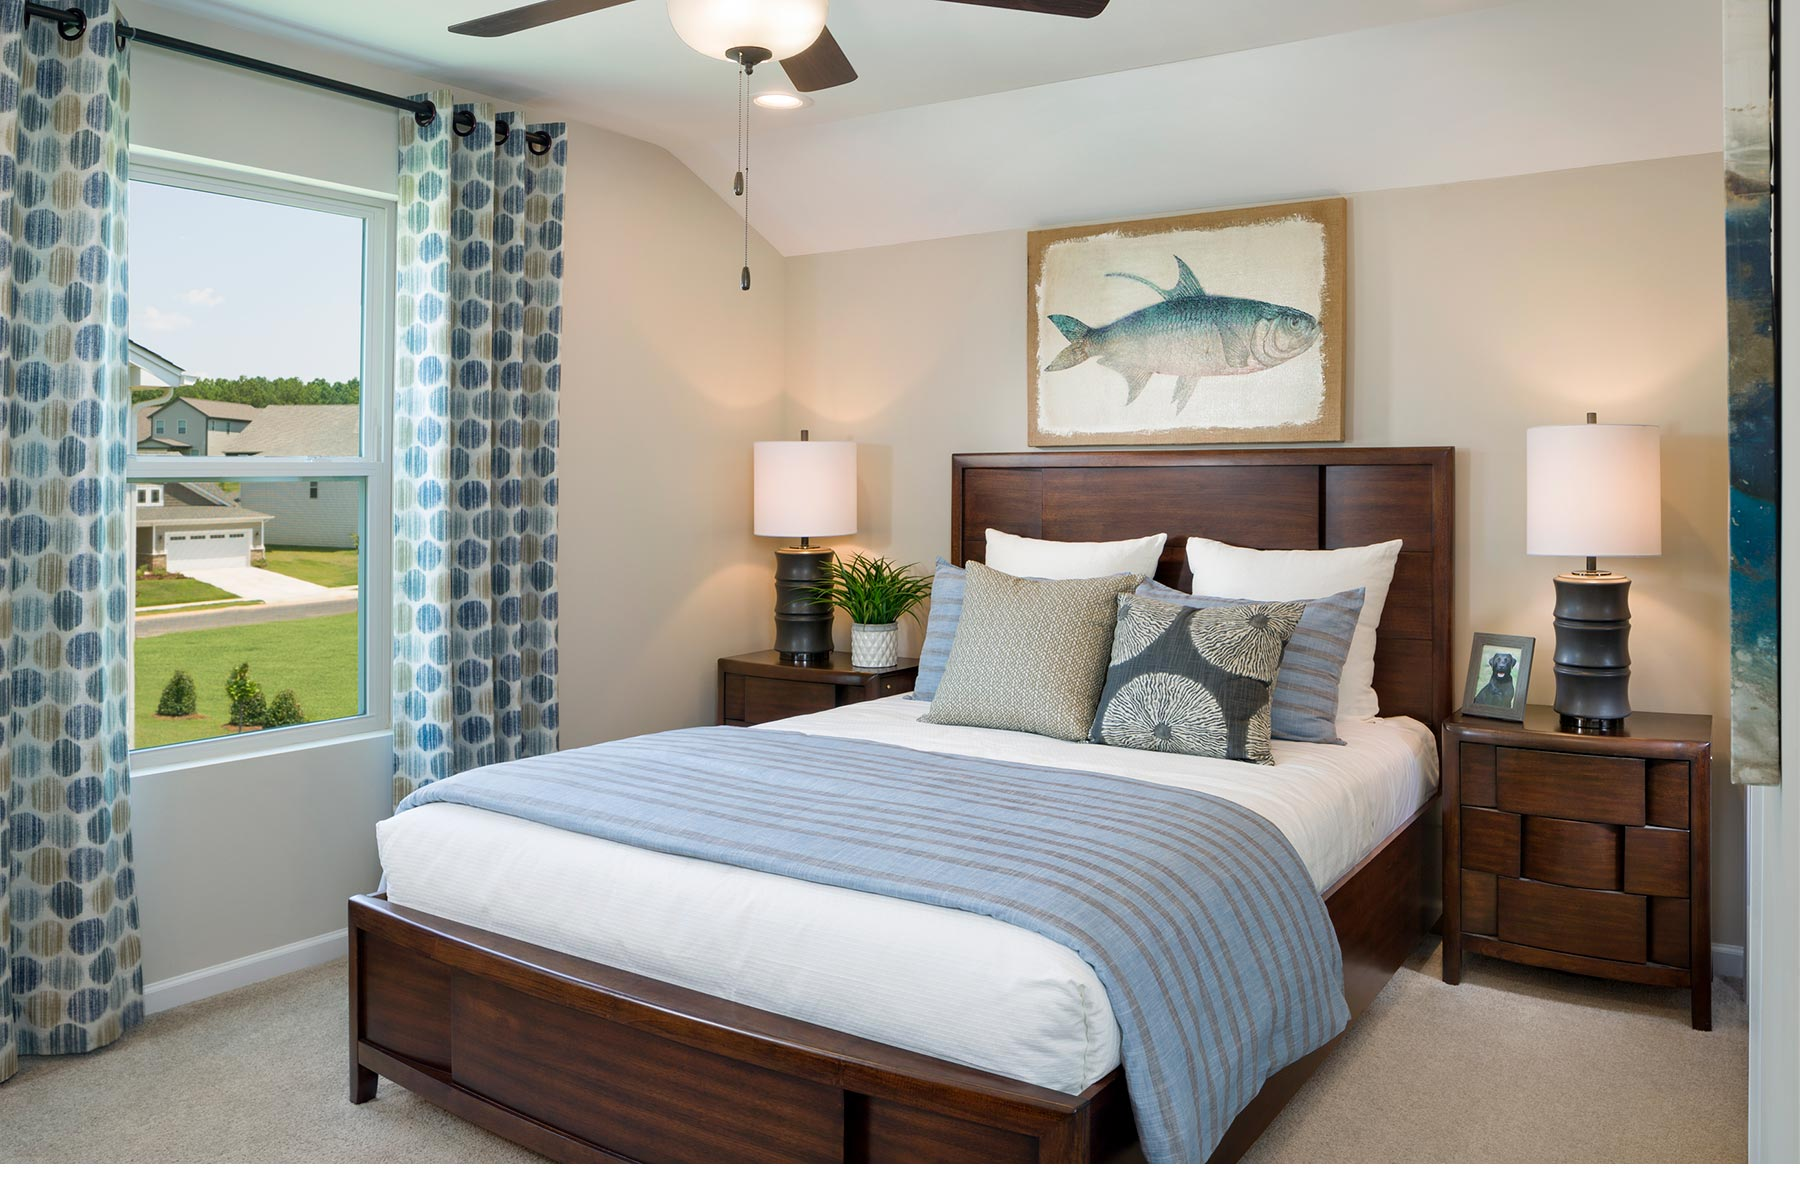 Ridgewater Bedroom in Charlotte North Carolina by Mattamy Homes